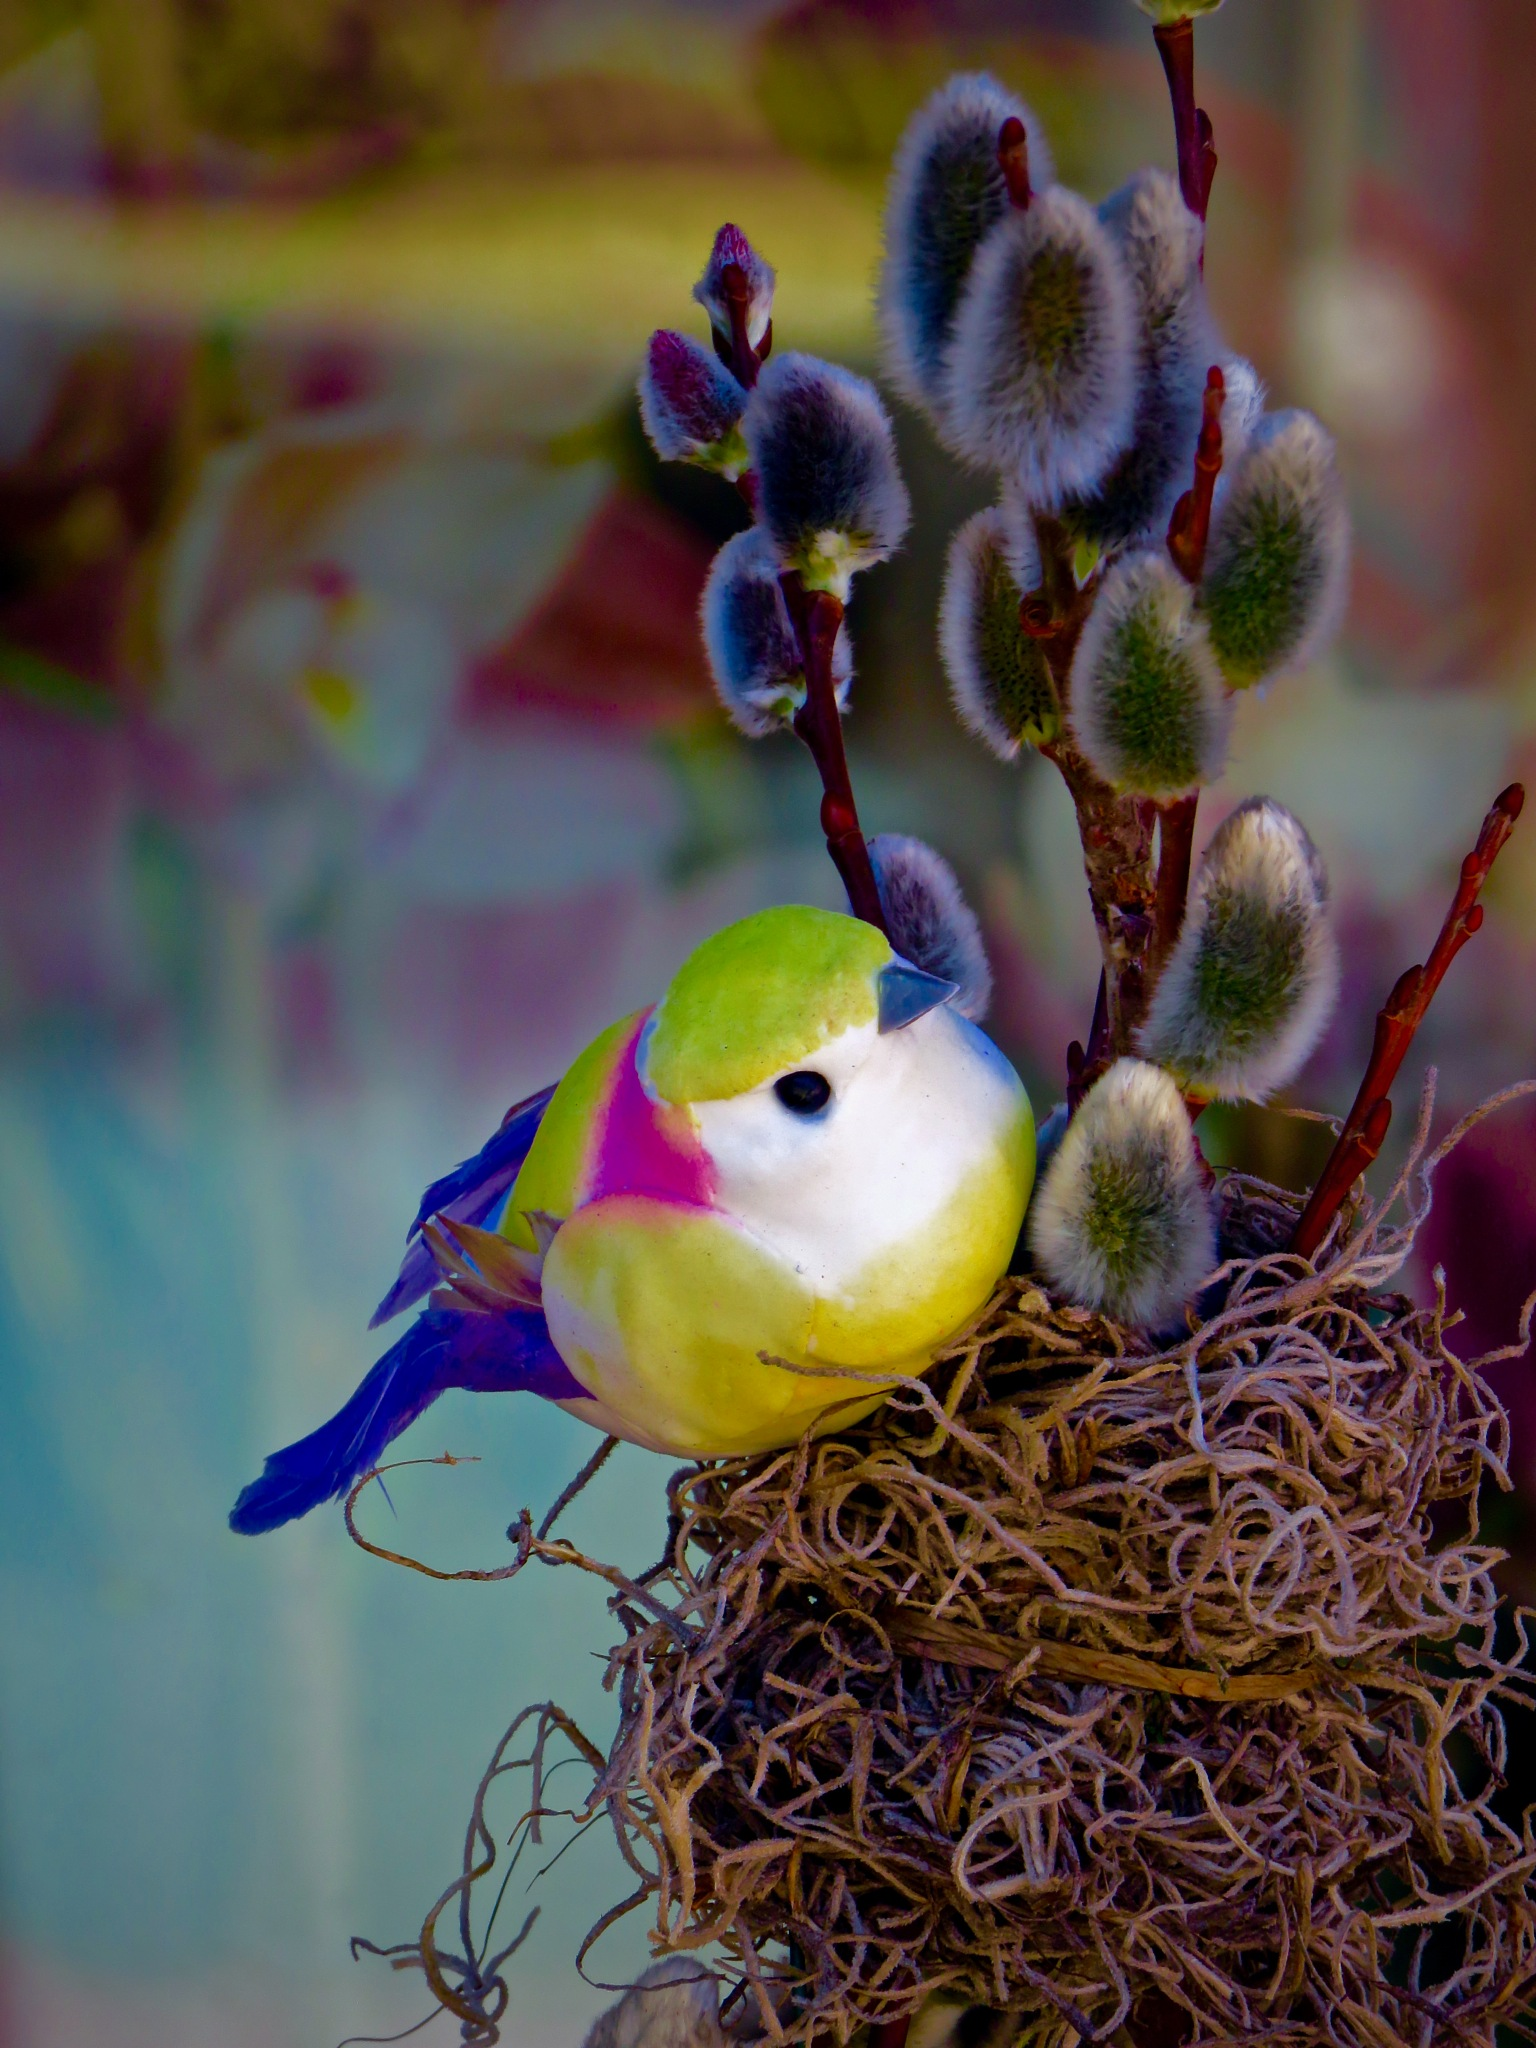 the bird of peace in a world global situation that sorta reeks huh !! ... : S by David Devion